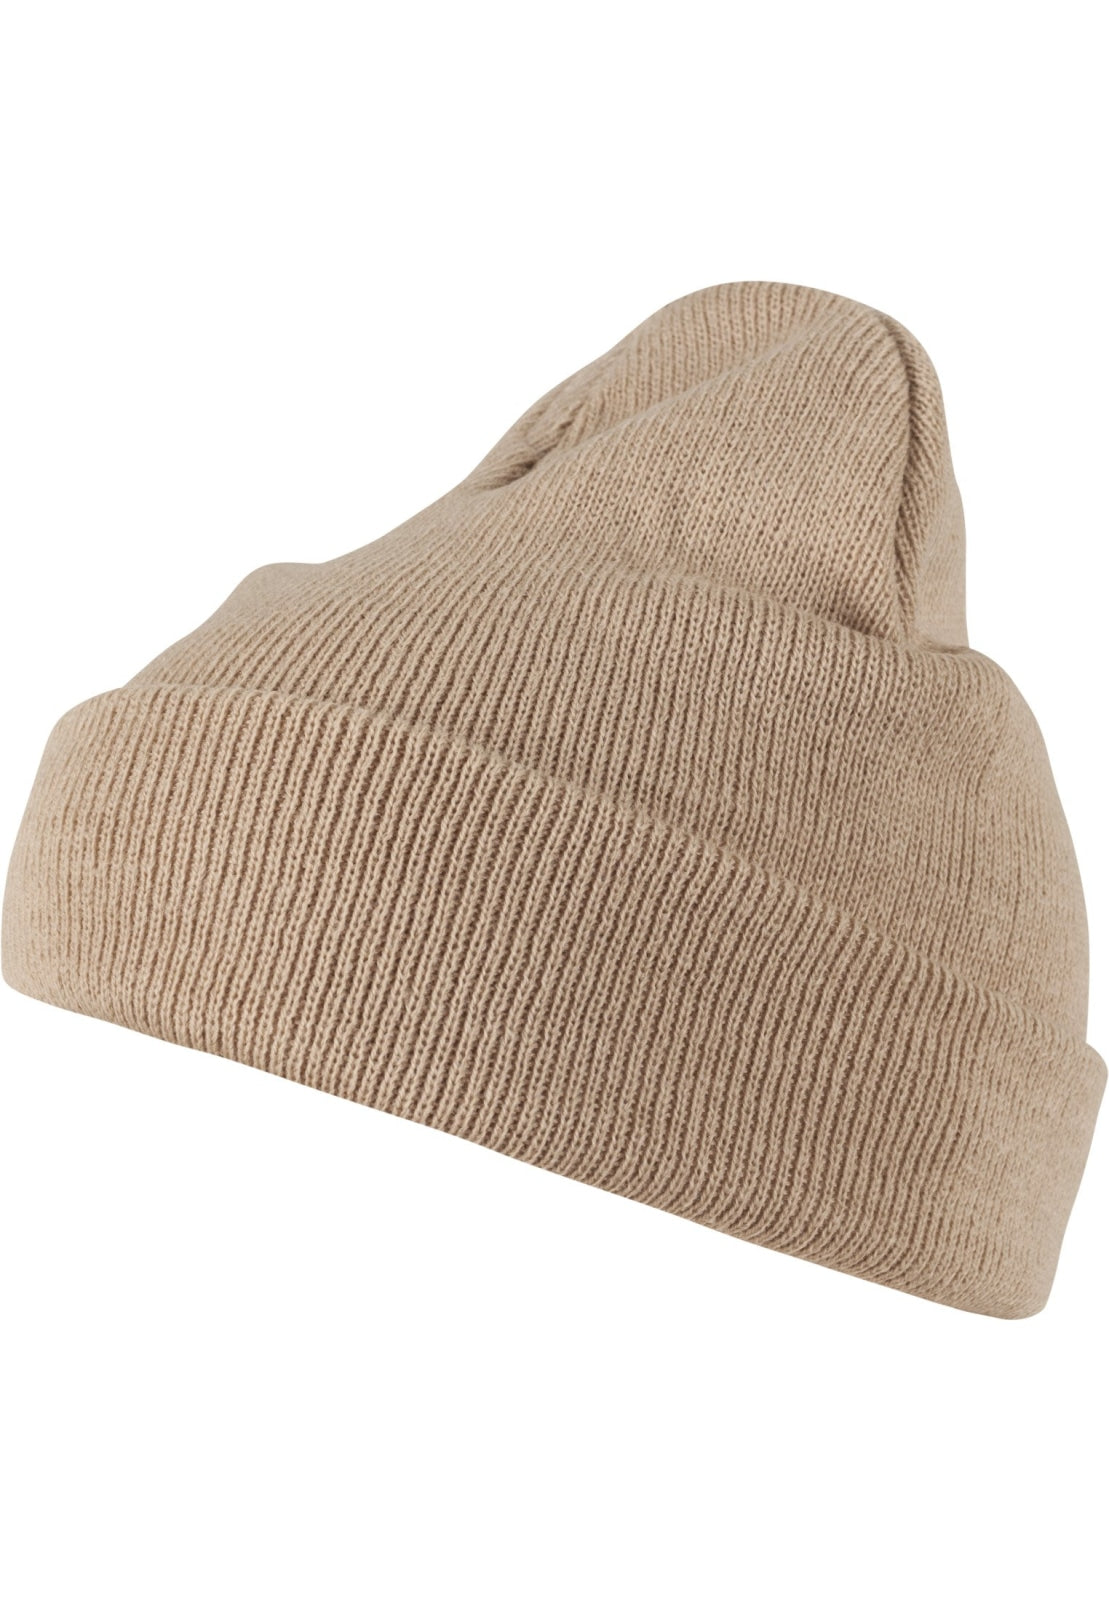 Beanie Pastel Basic Flap (5 Colors) Cappuccino / One Size Headwear Masterdis